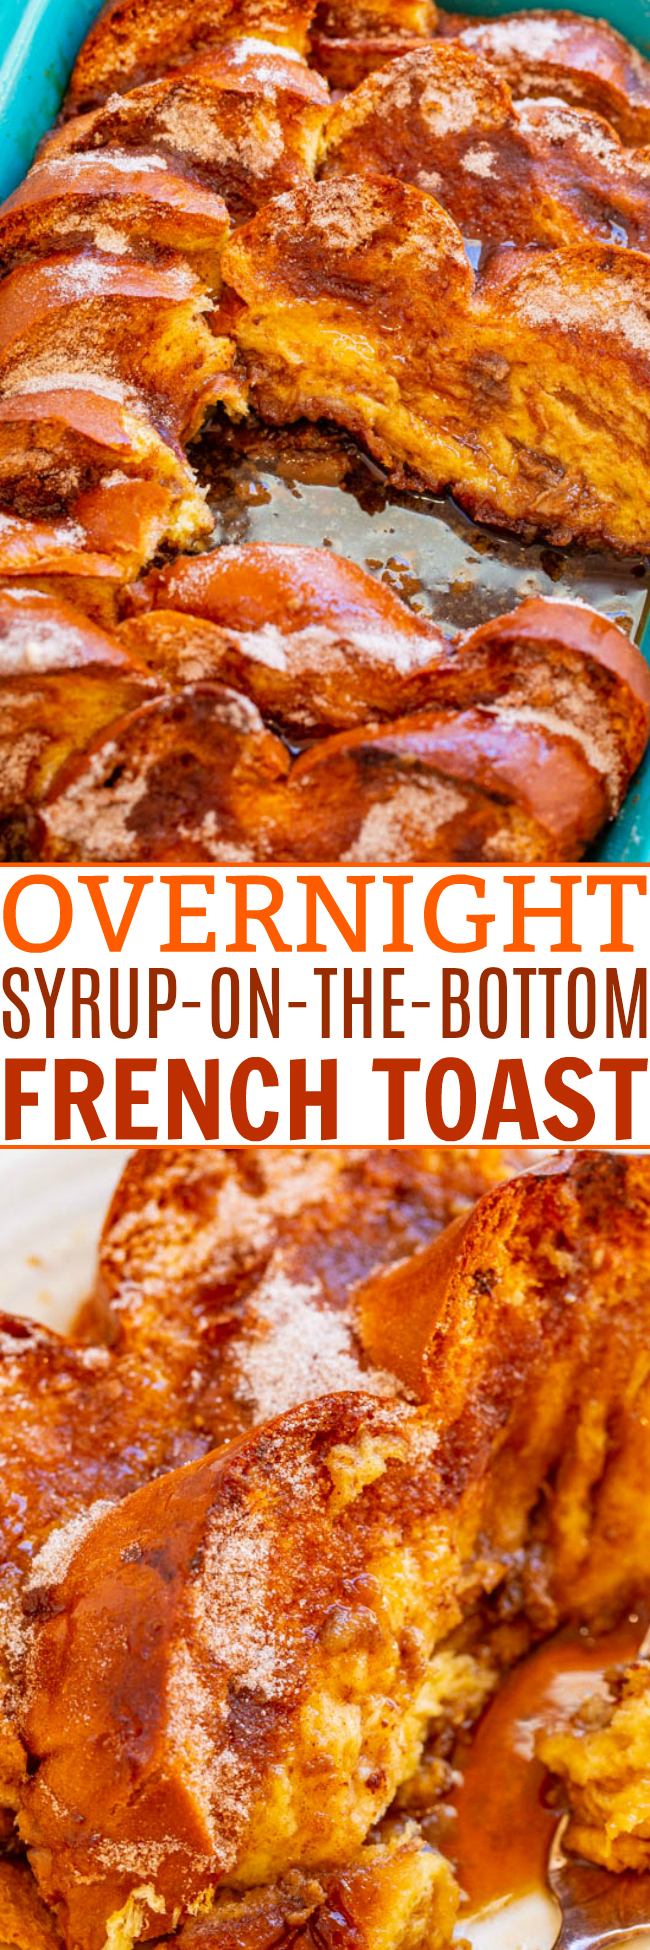 Overnight Syrup-On-The-Bottom French Toast - Assemble it the night before and wake up to AMAZING French toast the next morning!! An EASY homemade syrup layer on the bottom with super SOFT challah bread on top! Great for brunches and holiday mornings!!